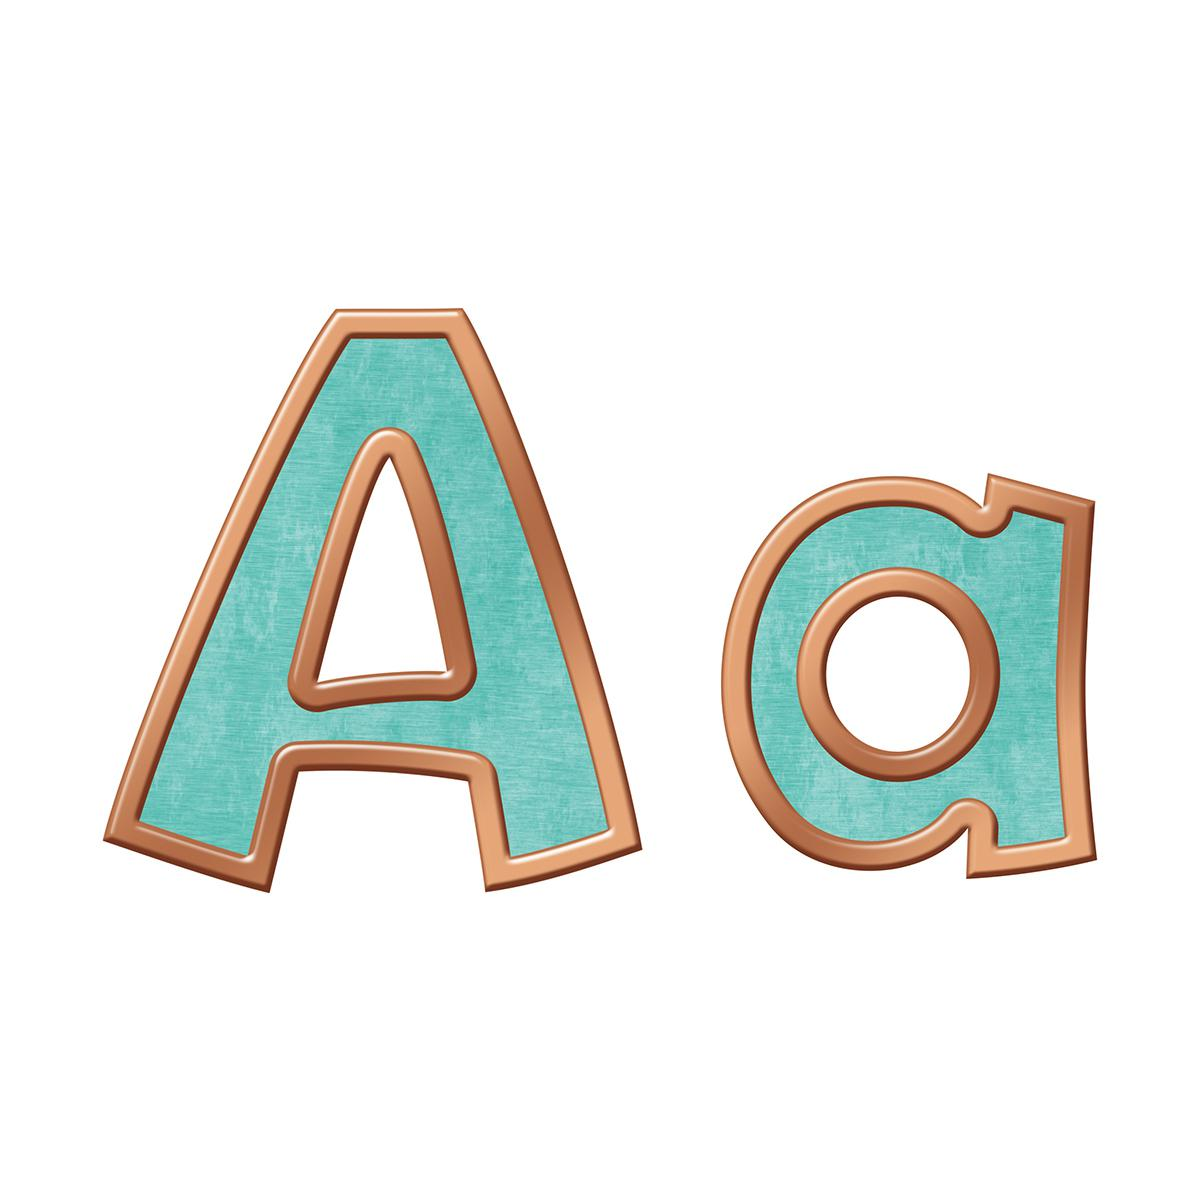 Playful Combo Ready Letters: I Love Metal: Copper & Patina